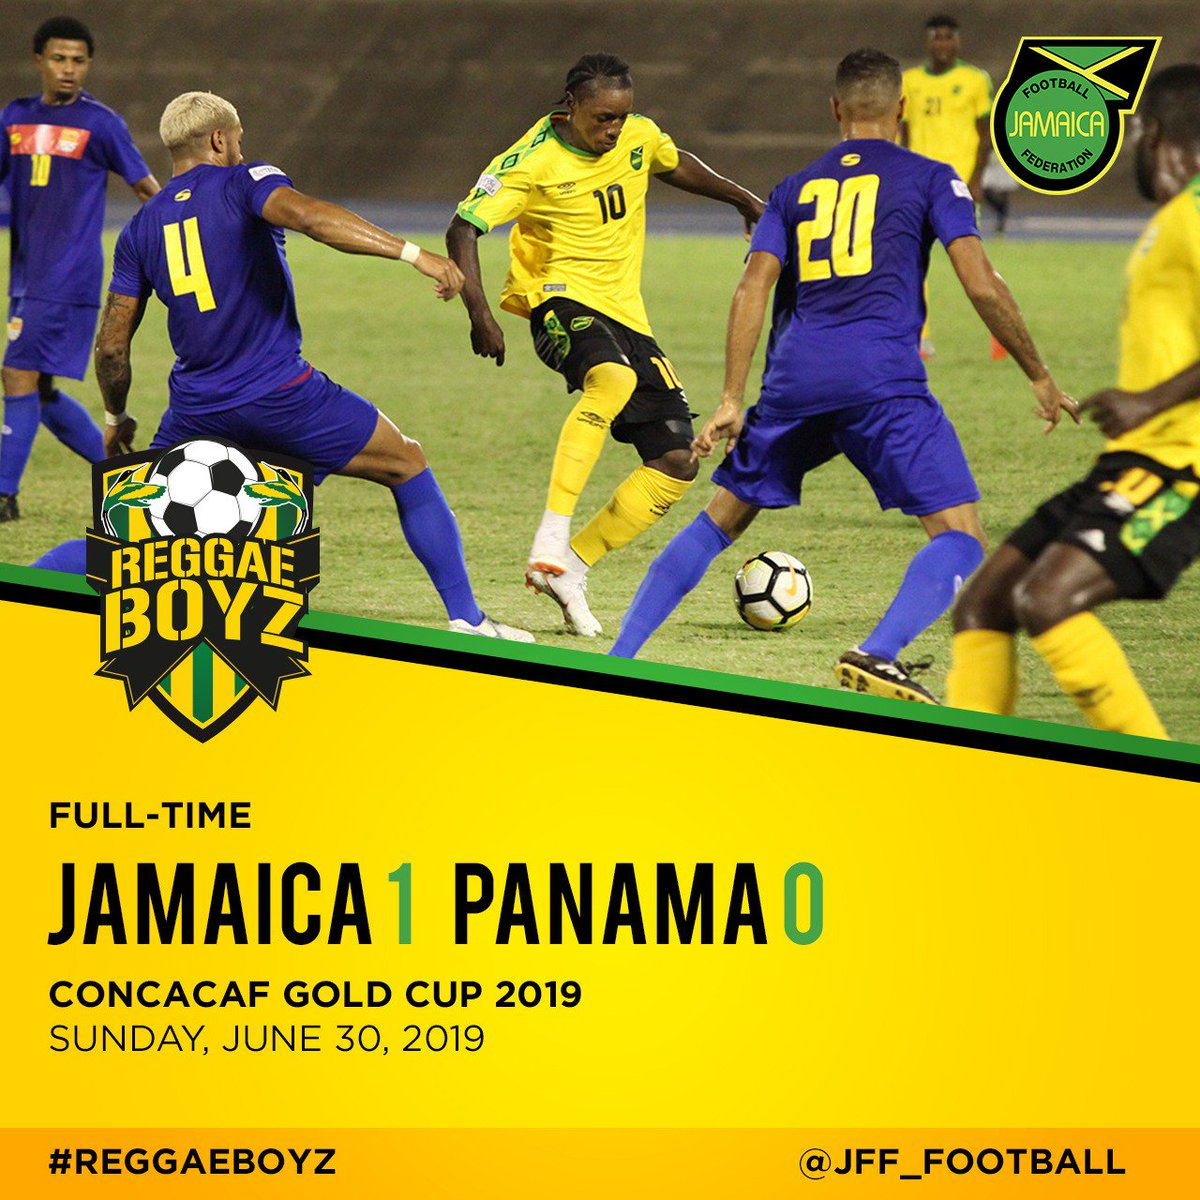 We off to the semifinals! The #ReggaeBoyz defeated Panama 1-0 recording their third #GoldCup Semifinal in a row, a feat no other caribbean team has ever achieved🖤💚💛. Goal by: Darren Mattocks 75'  #JFFLive #ReggaeBoyz #ReggaeFootball #StillOnTheBall #Goldcup